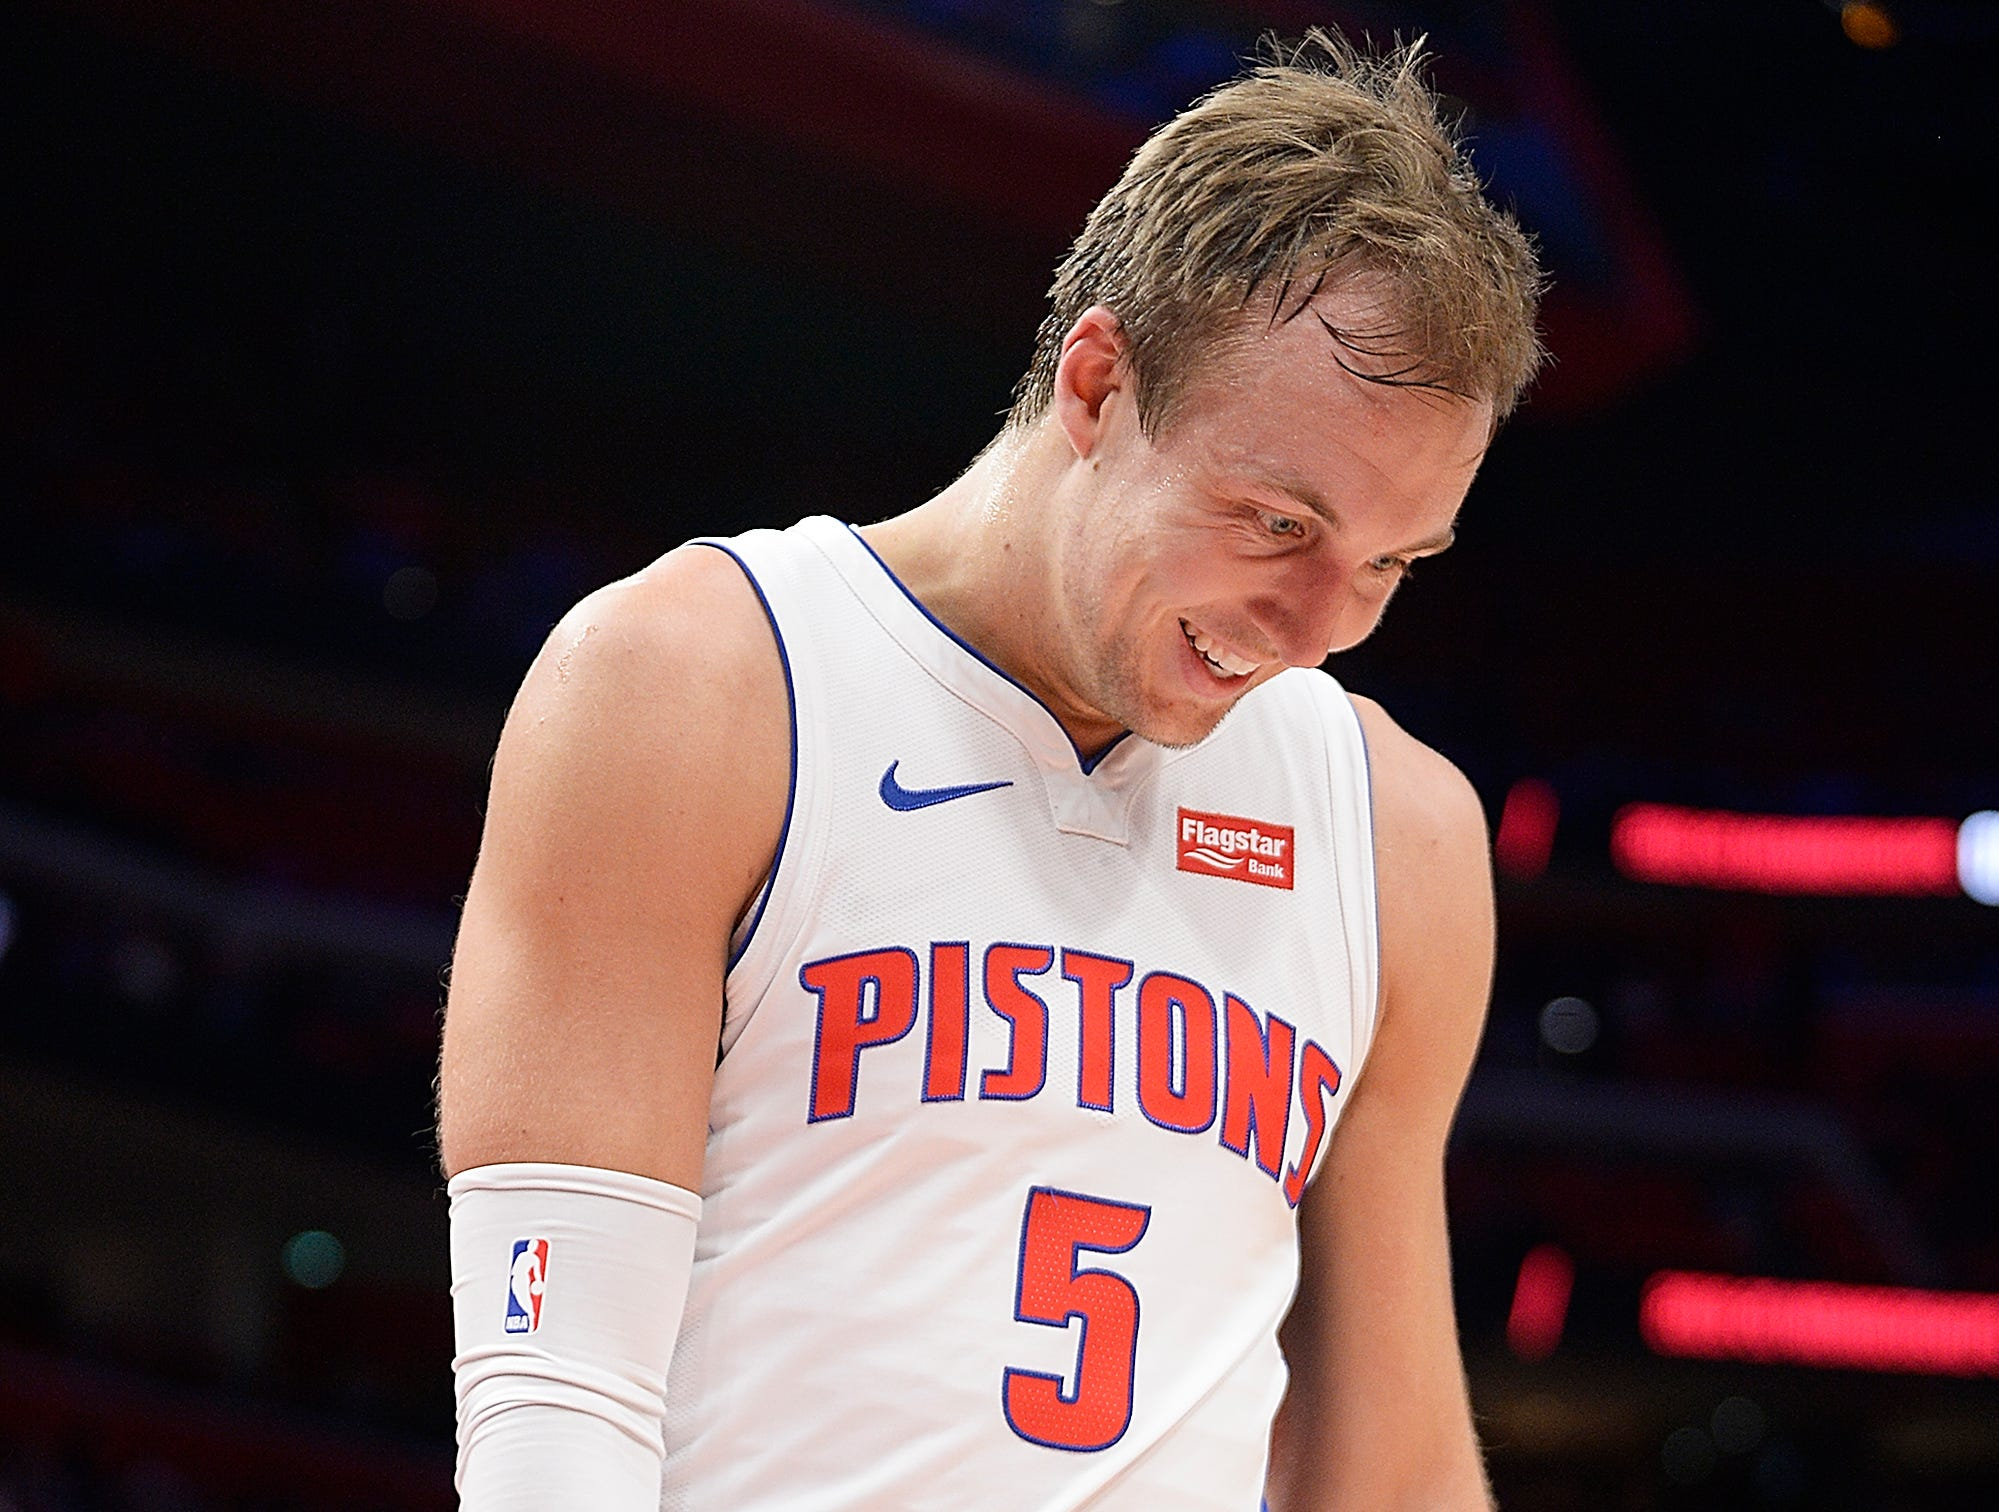 Pistons' Luke Kennard celebrates after making a basket in the second quarter.